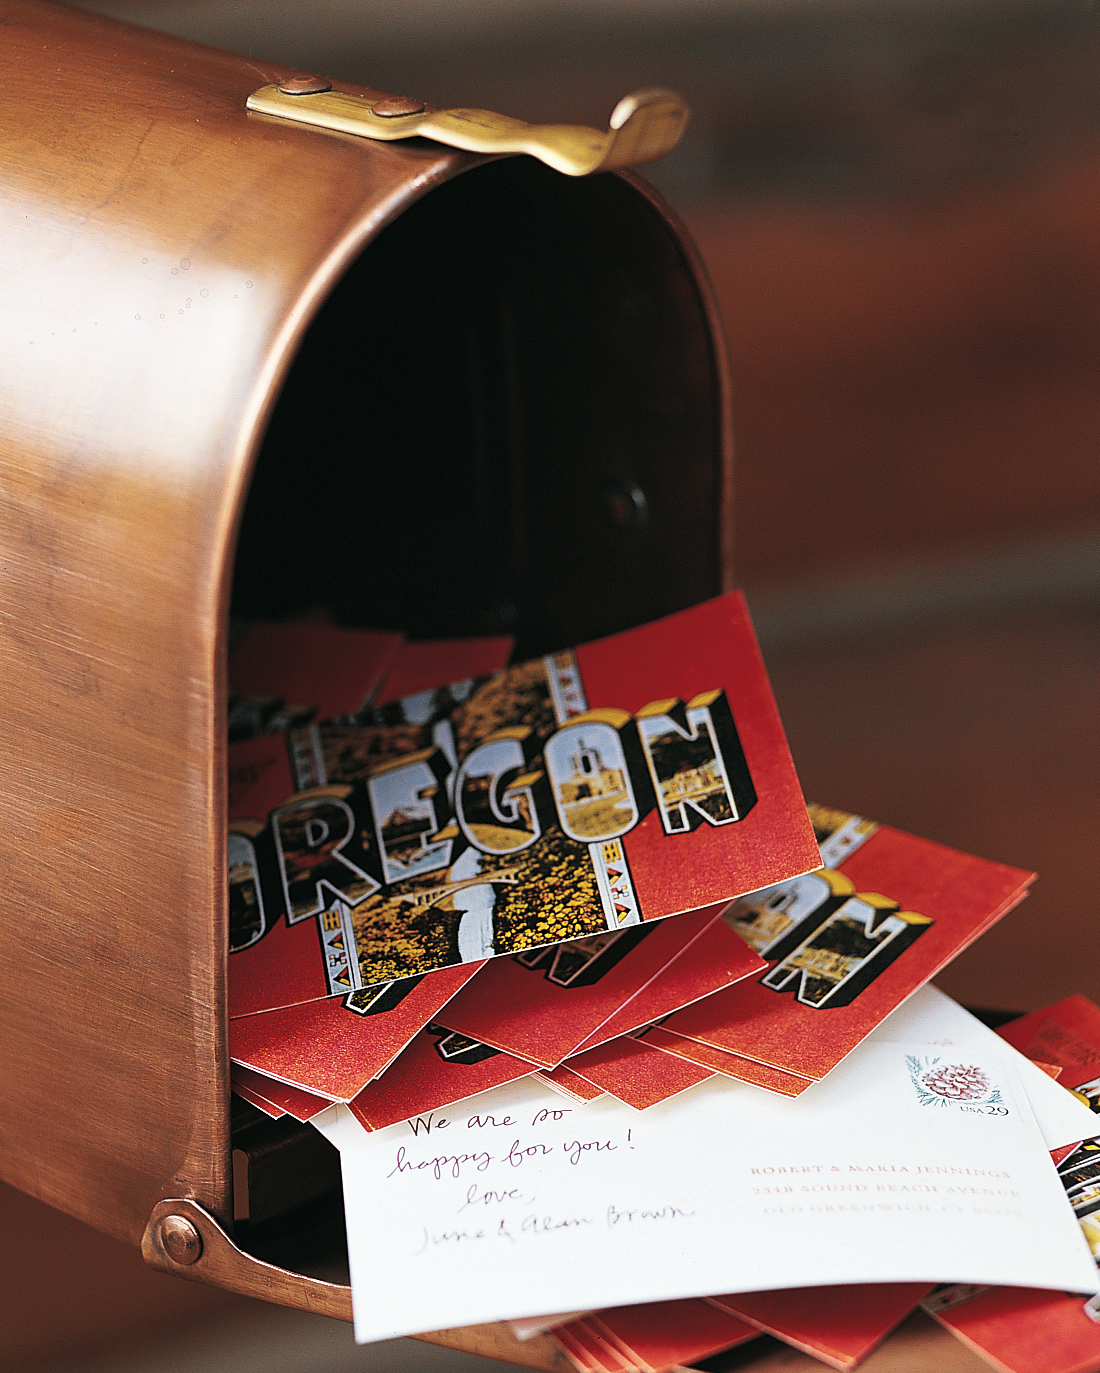 Rather than signing a traditional guest book, guests at this wedding were given postcards with the bride and groom's address printed on the back to fill with good wishes during the reception and drop in a copper mailbox displayed in the lobby. The cards were to be mailed the next day by a friend of the couple so that the newlyweds would return from their honeymoon to a brimming mailbox.